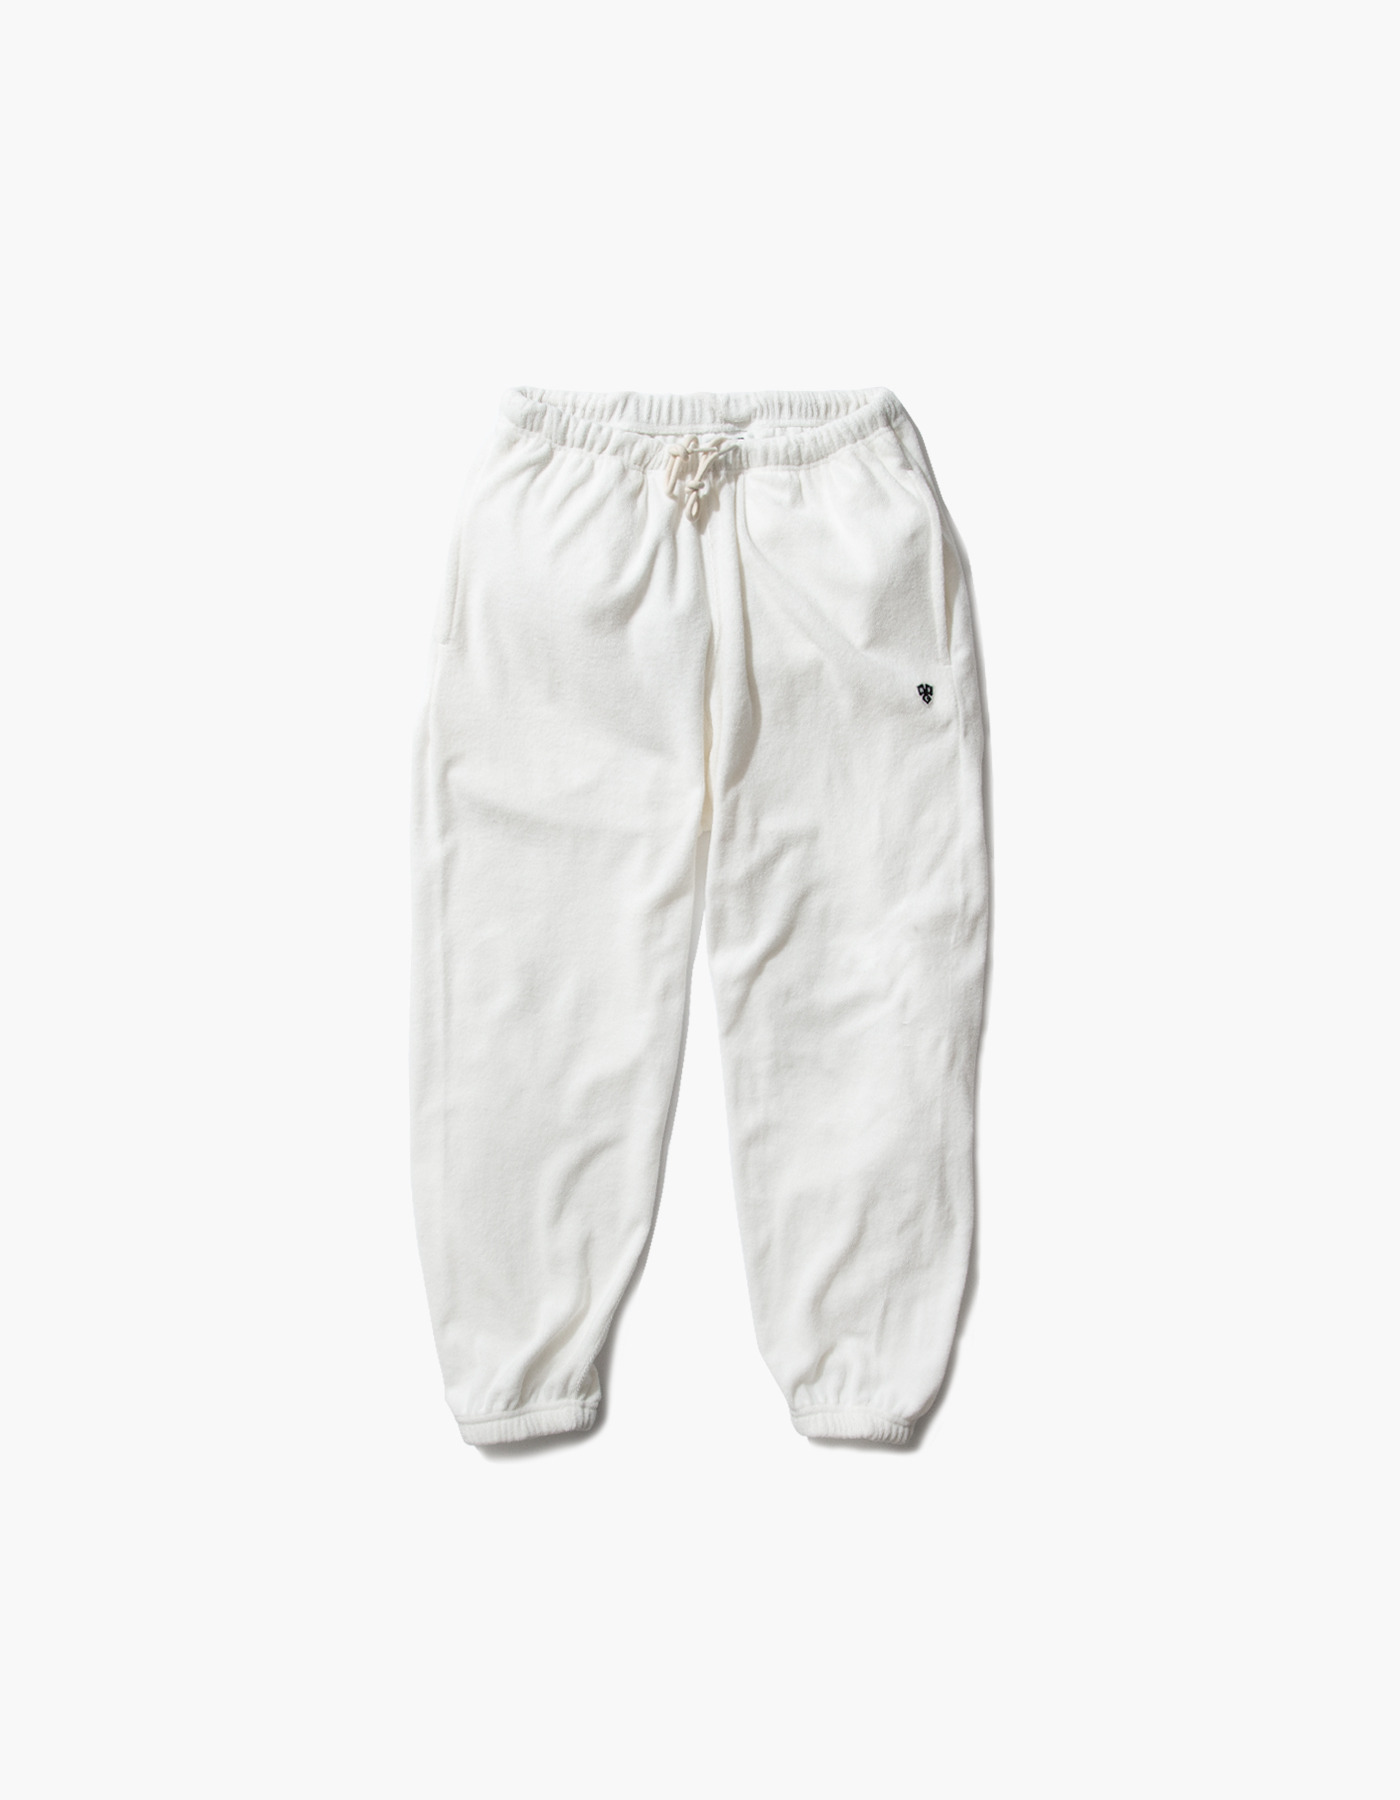 HFC CREST TOWEL JOGGER PANTS / WHITE